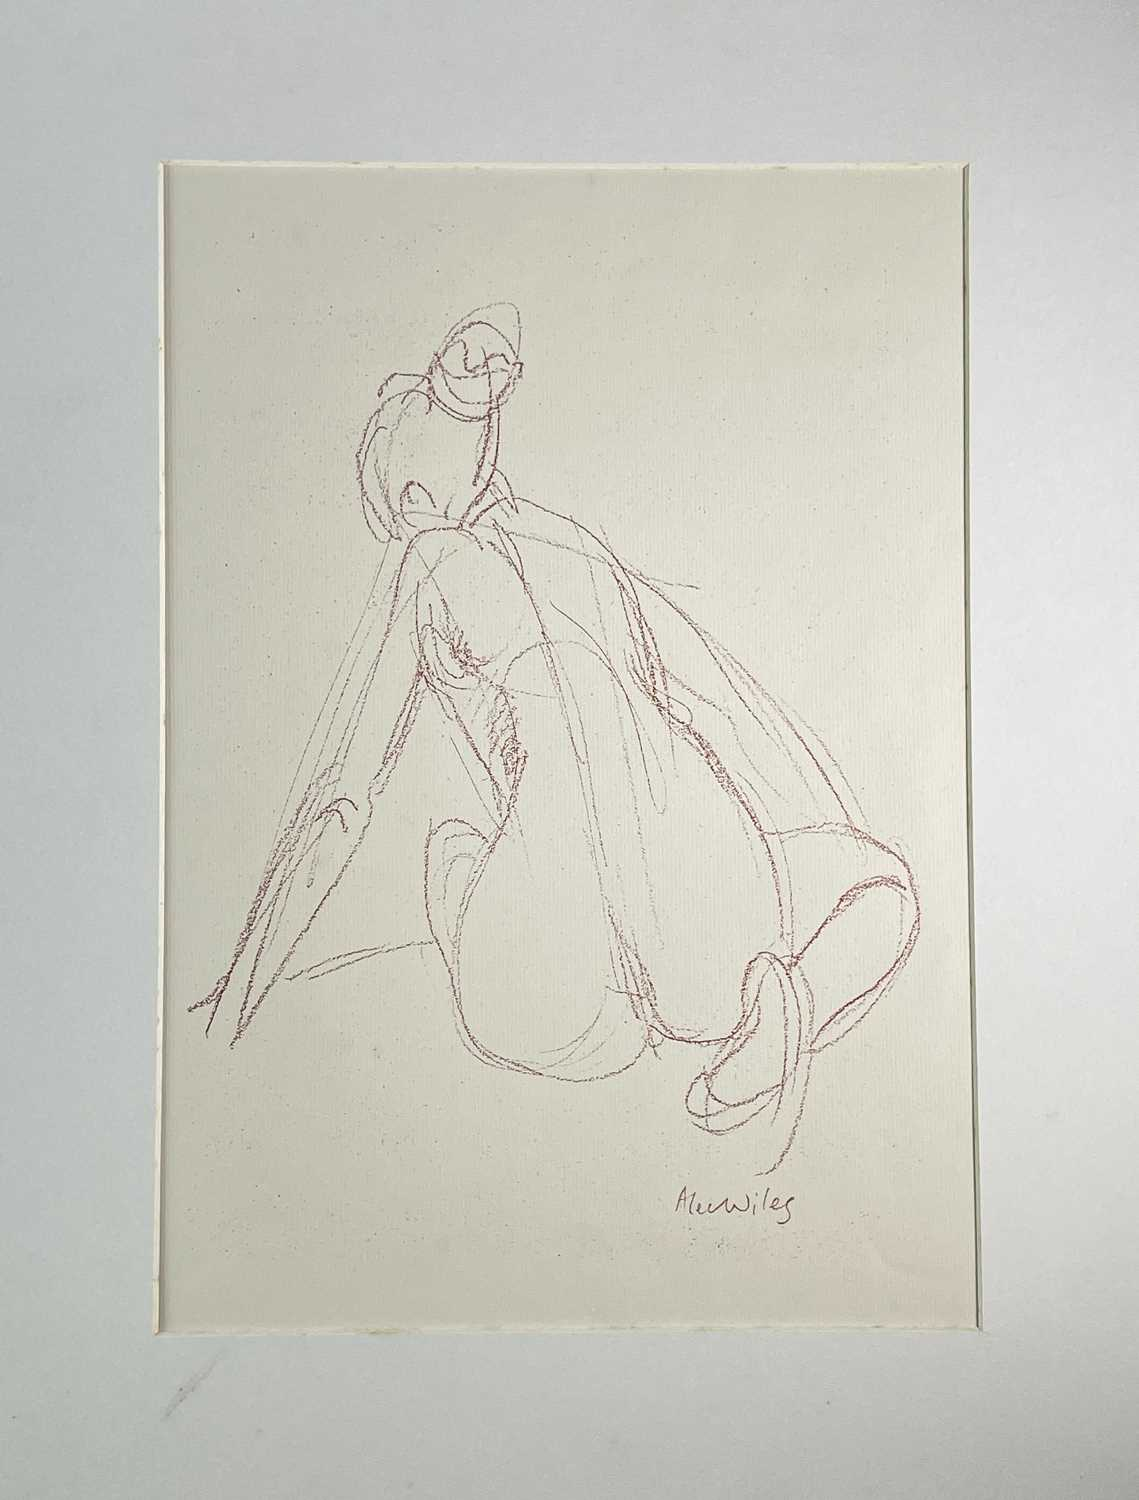 Alec WILES (1924) Various works including prints - Image 15 of 30